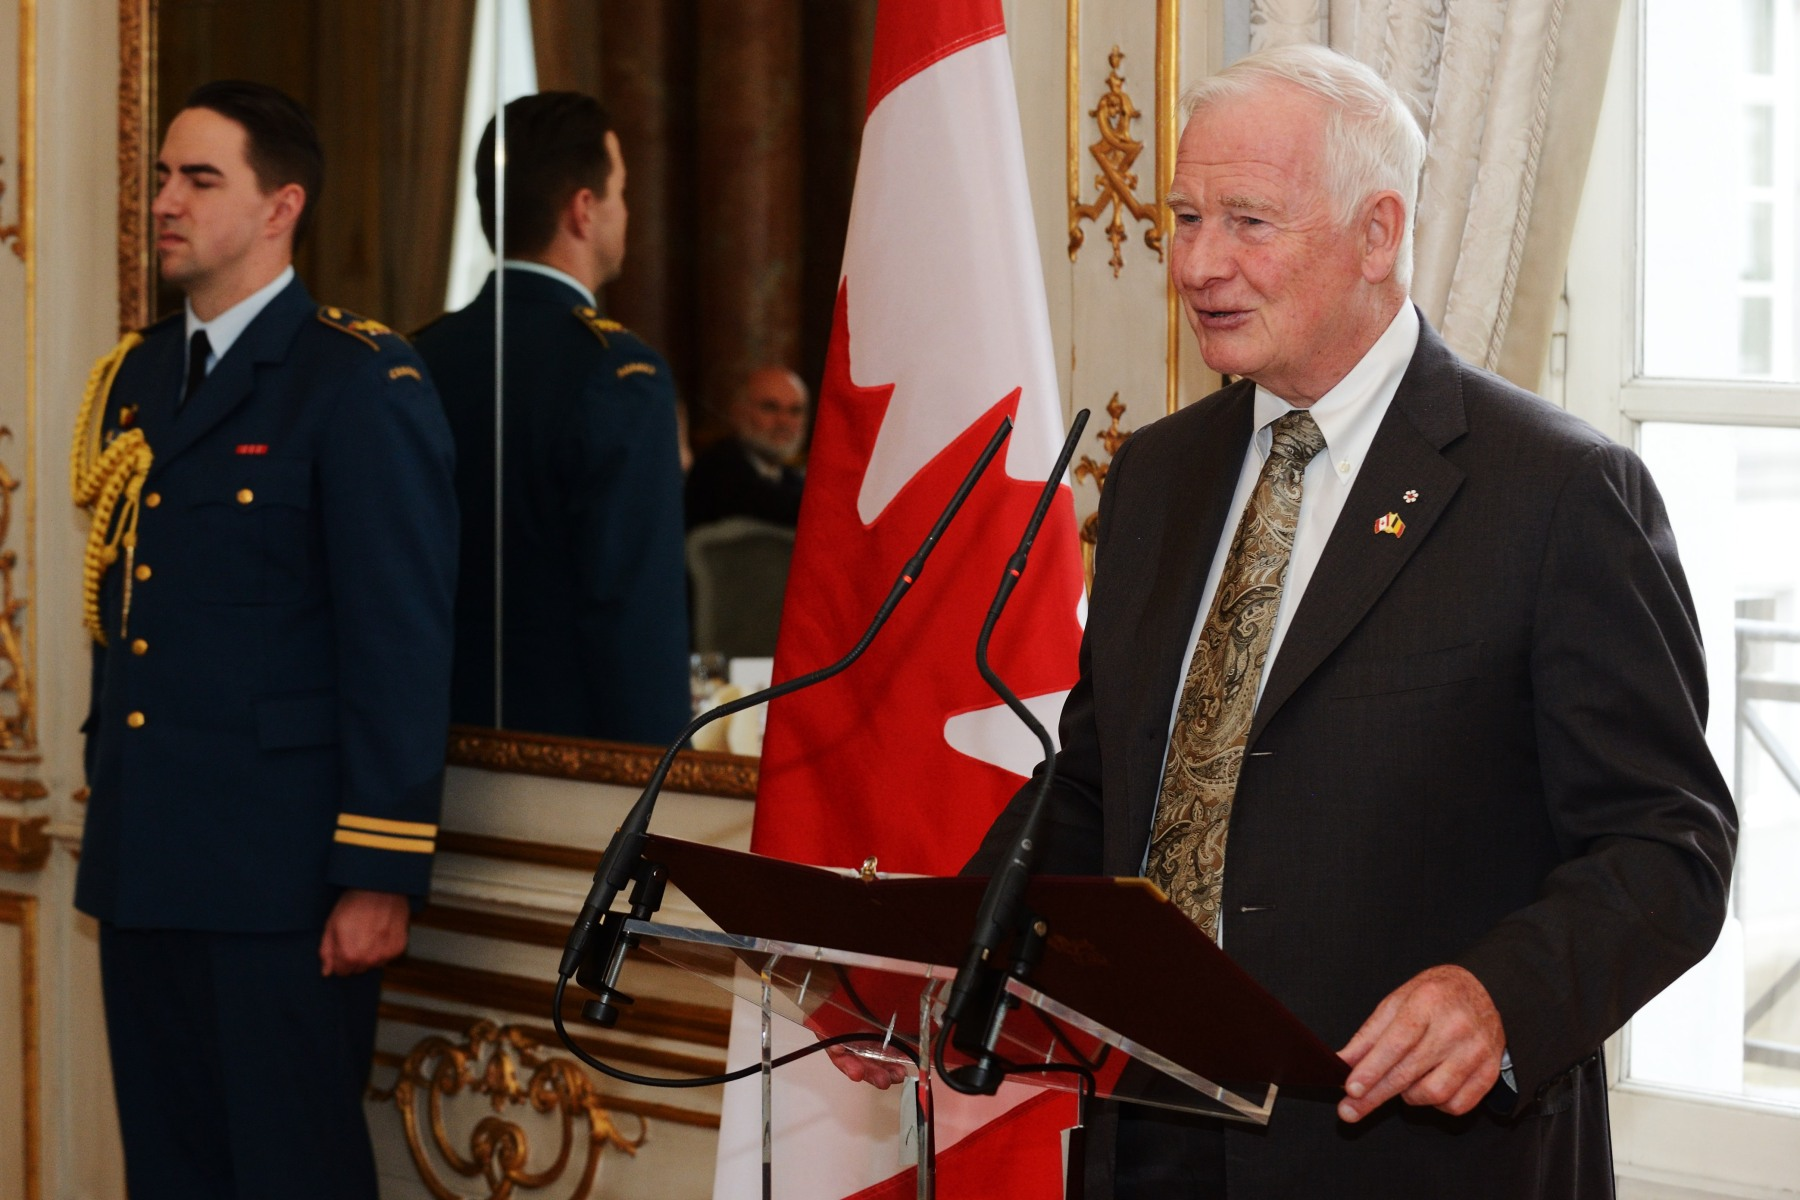 The Governor General delivered a keynote address to highlight Canada's qualities as an investment destination and to build awareness on the CETA. He also underlined Canada's war efforts in Belgium during the 20th century and celebrated 75 years of diplomatic relations.